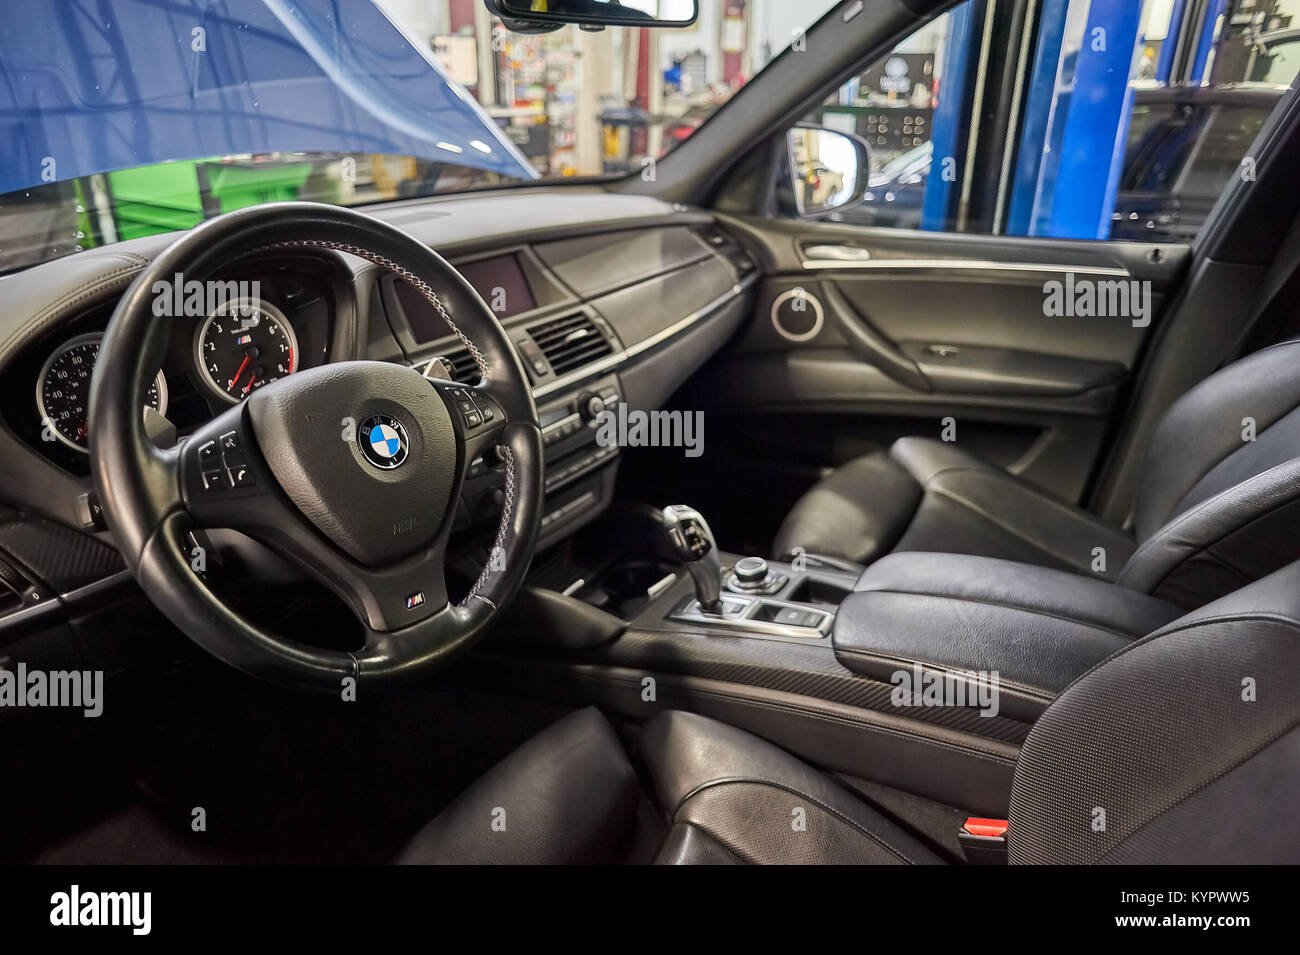 Black Bmw X5 High Resolution Stock Photography And Images Alamy